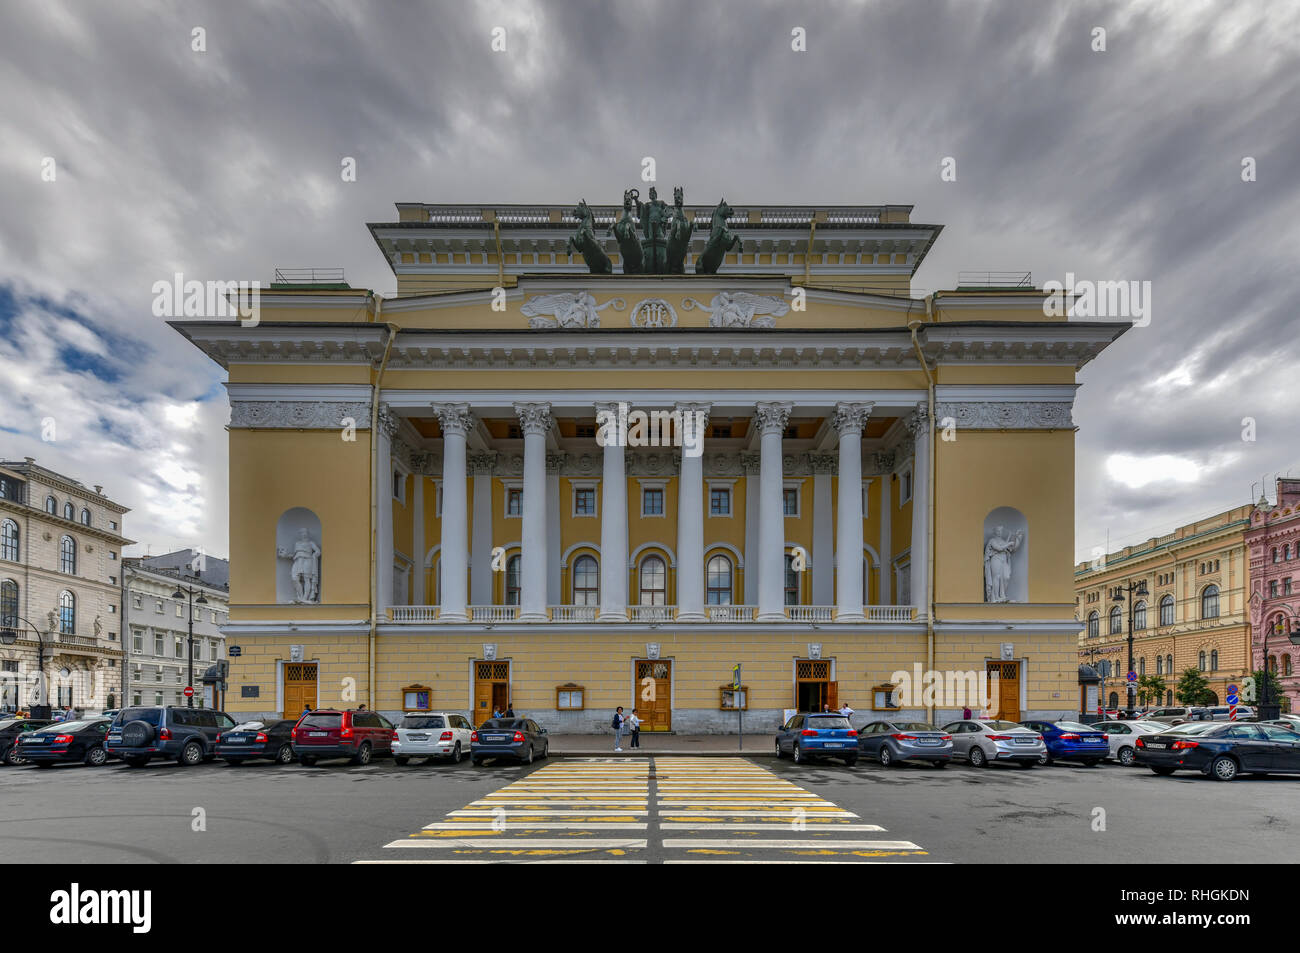 Saint Petersburg, Russia - July 3, 2018: Alexandrinsky Theater in St. Petersburg, one of the oldest drama theaters in Russia. - Stock Image